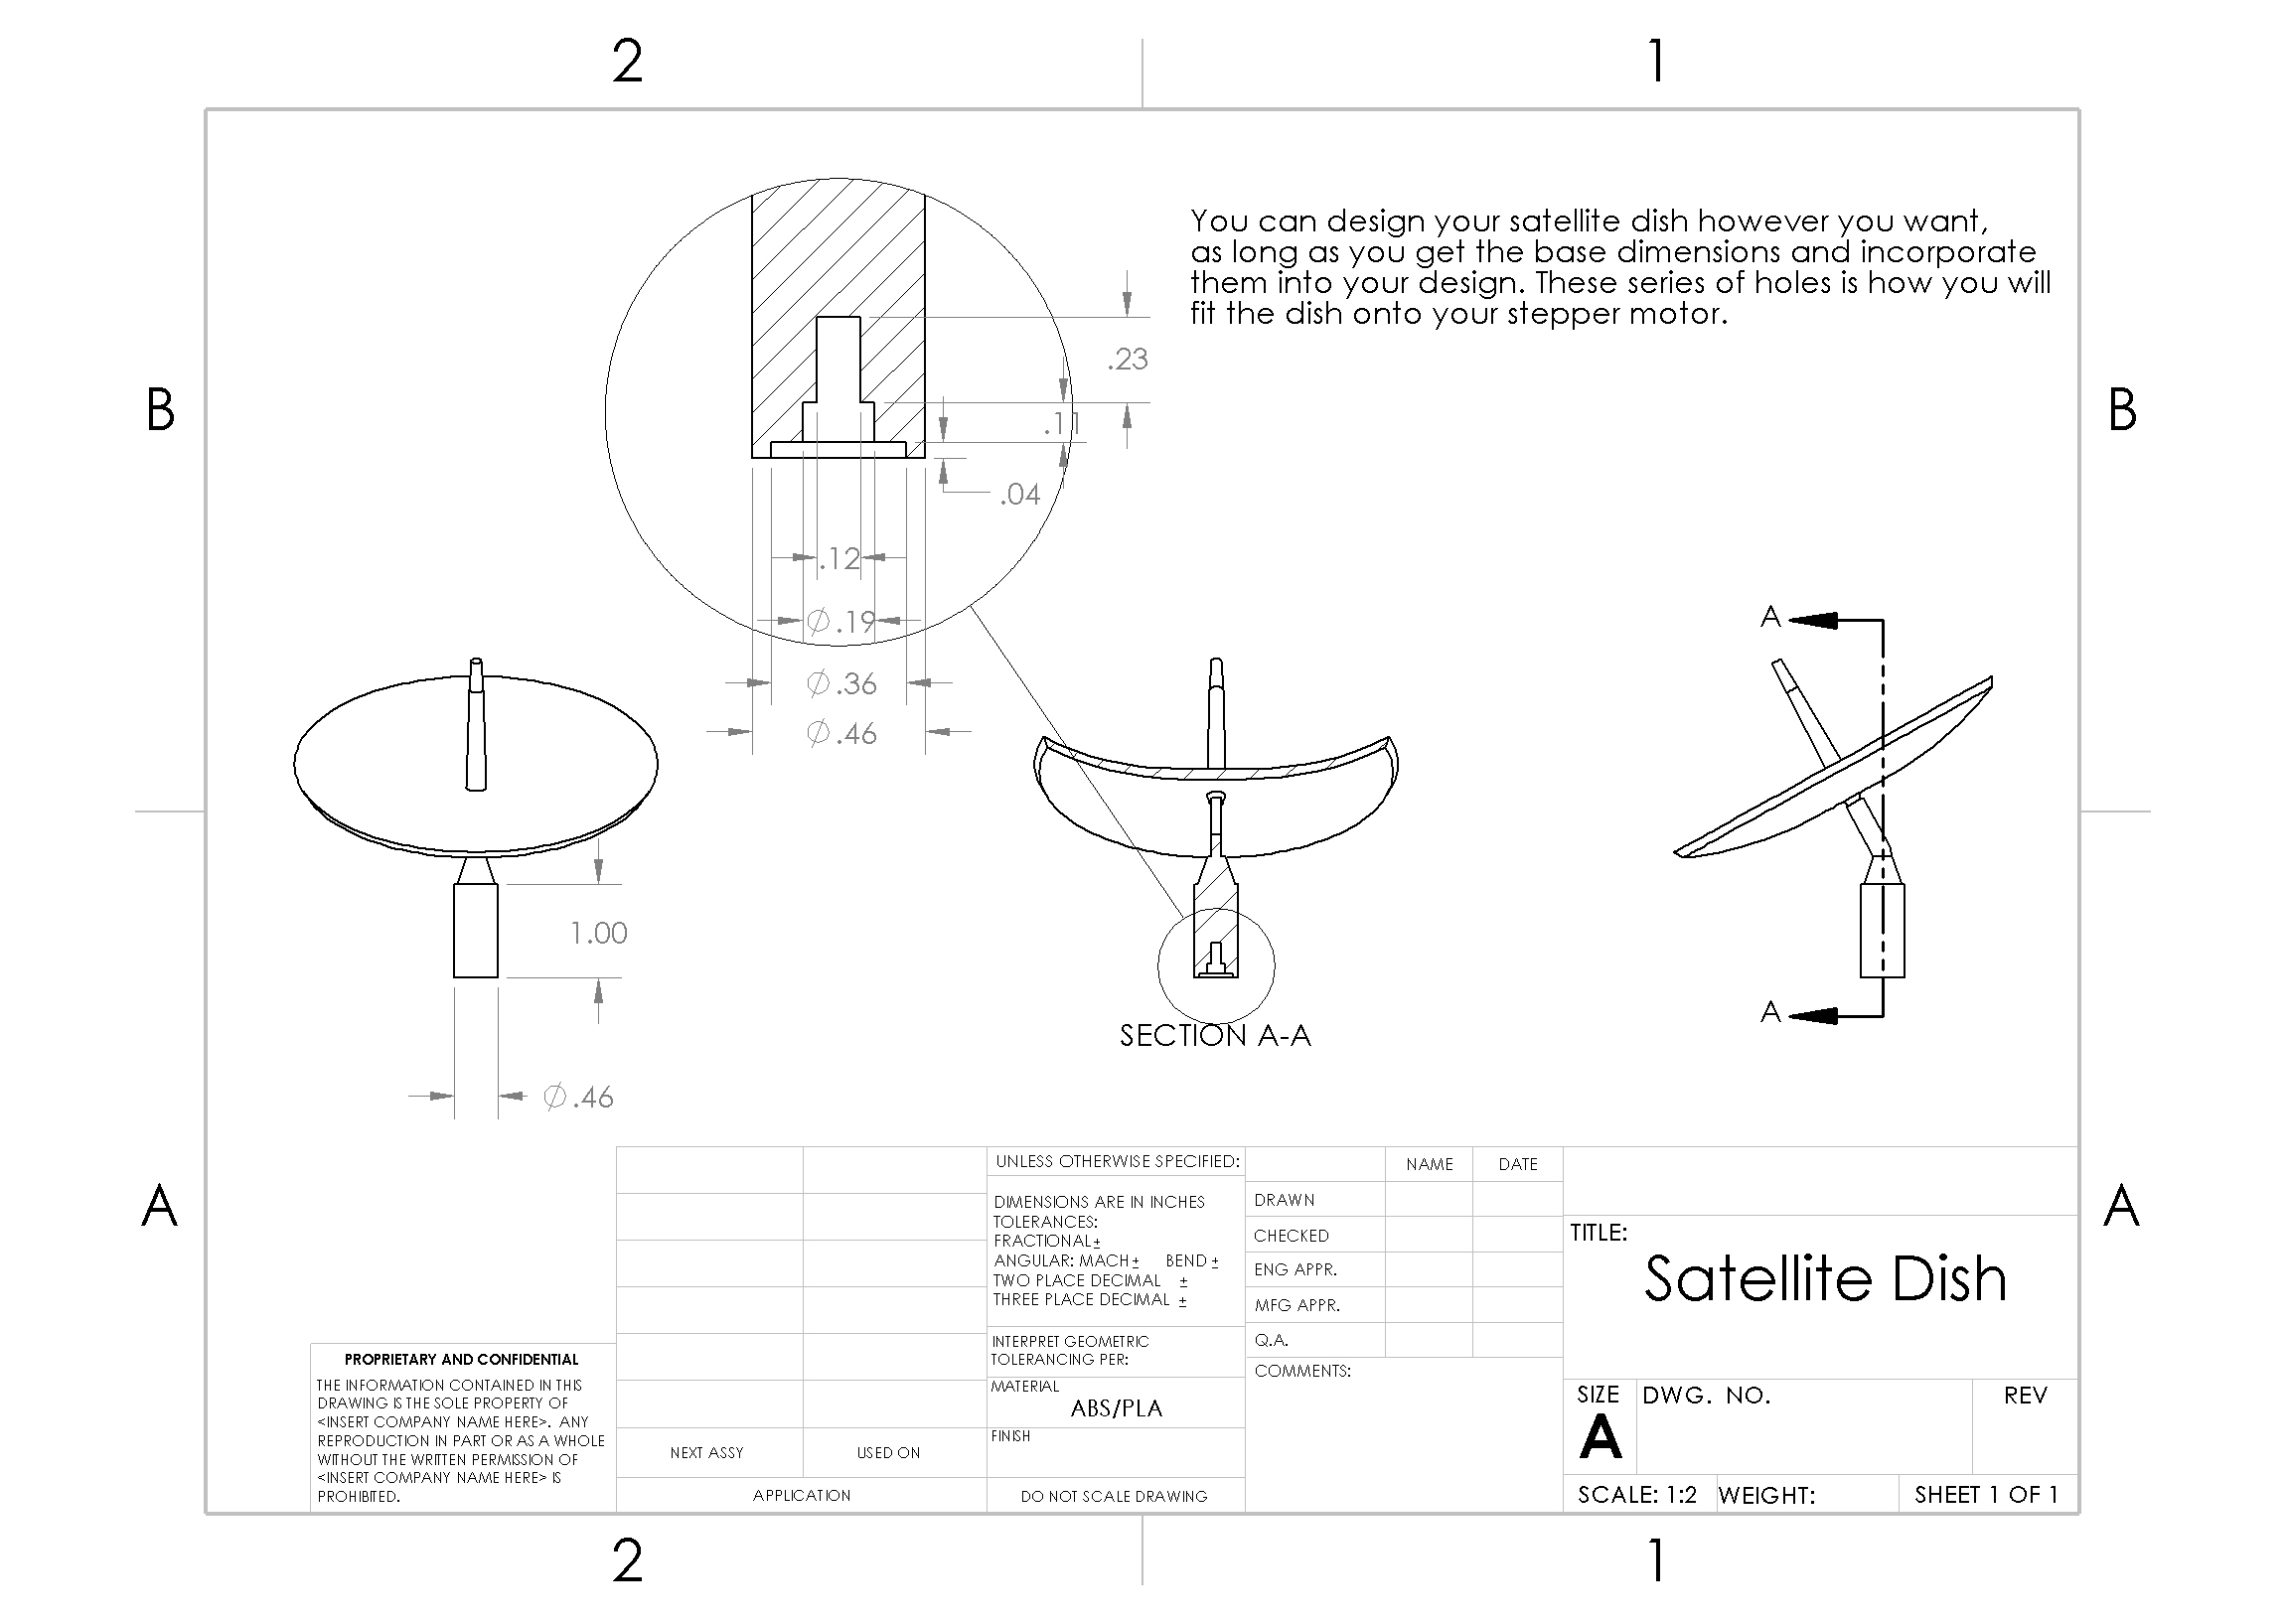 Picture of Schematics and Dimensions - Satellite Dish